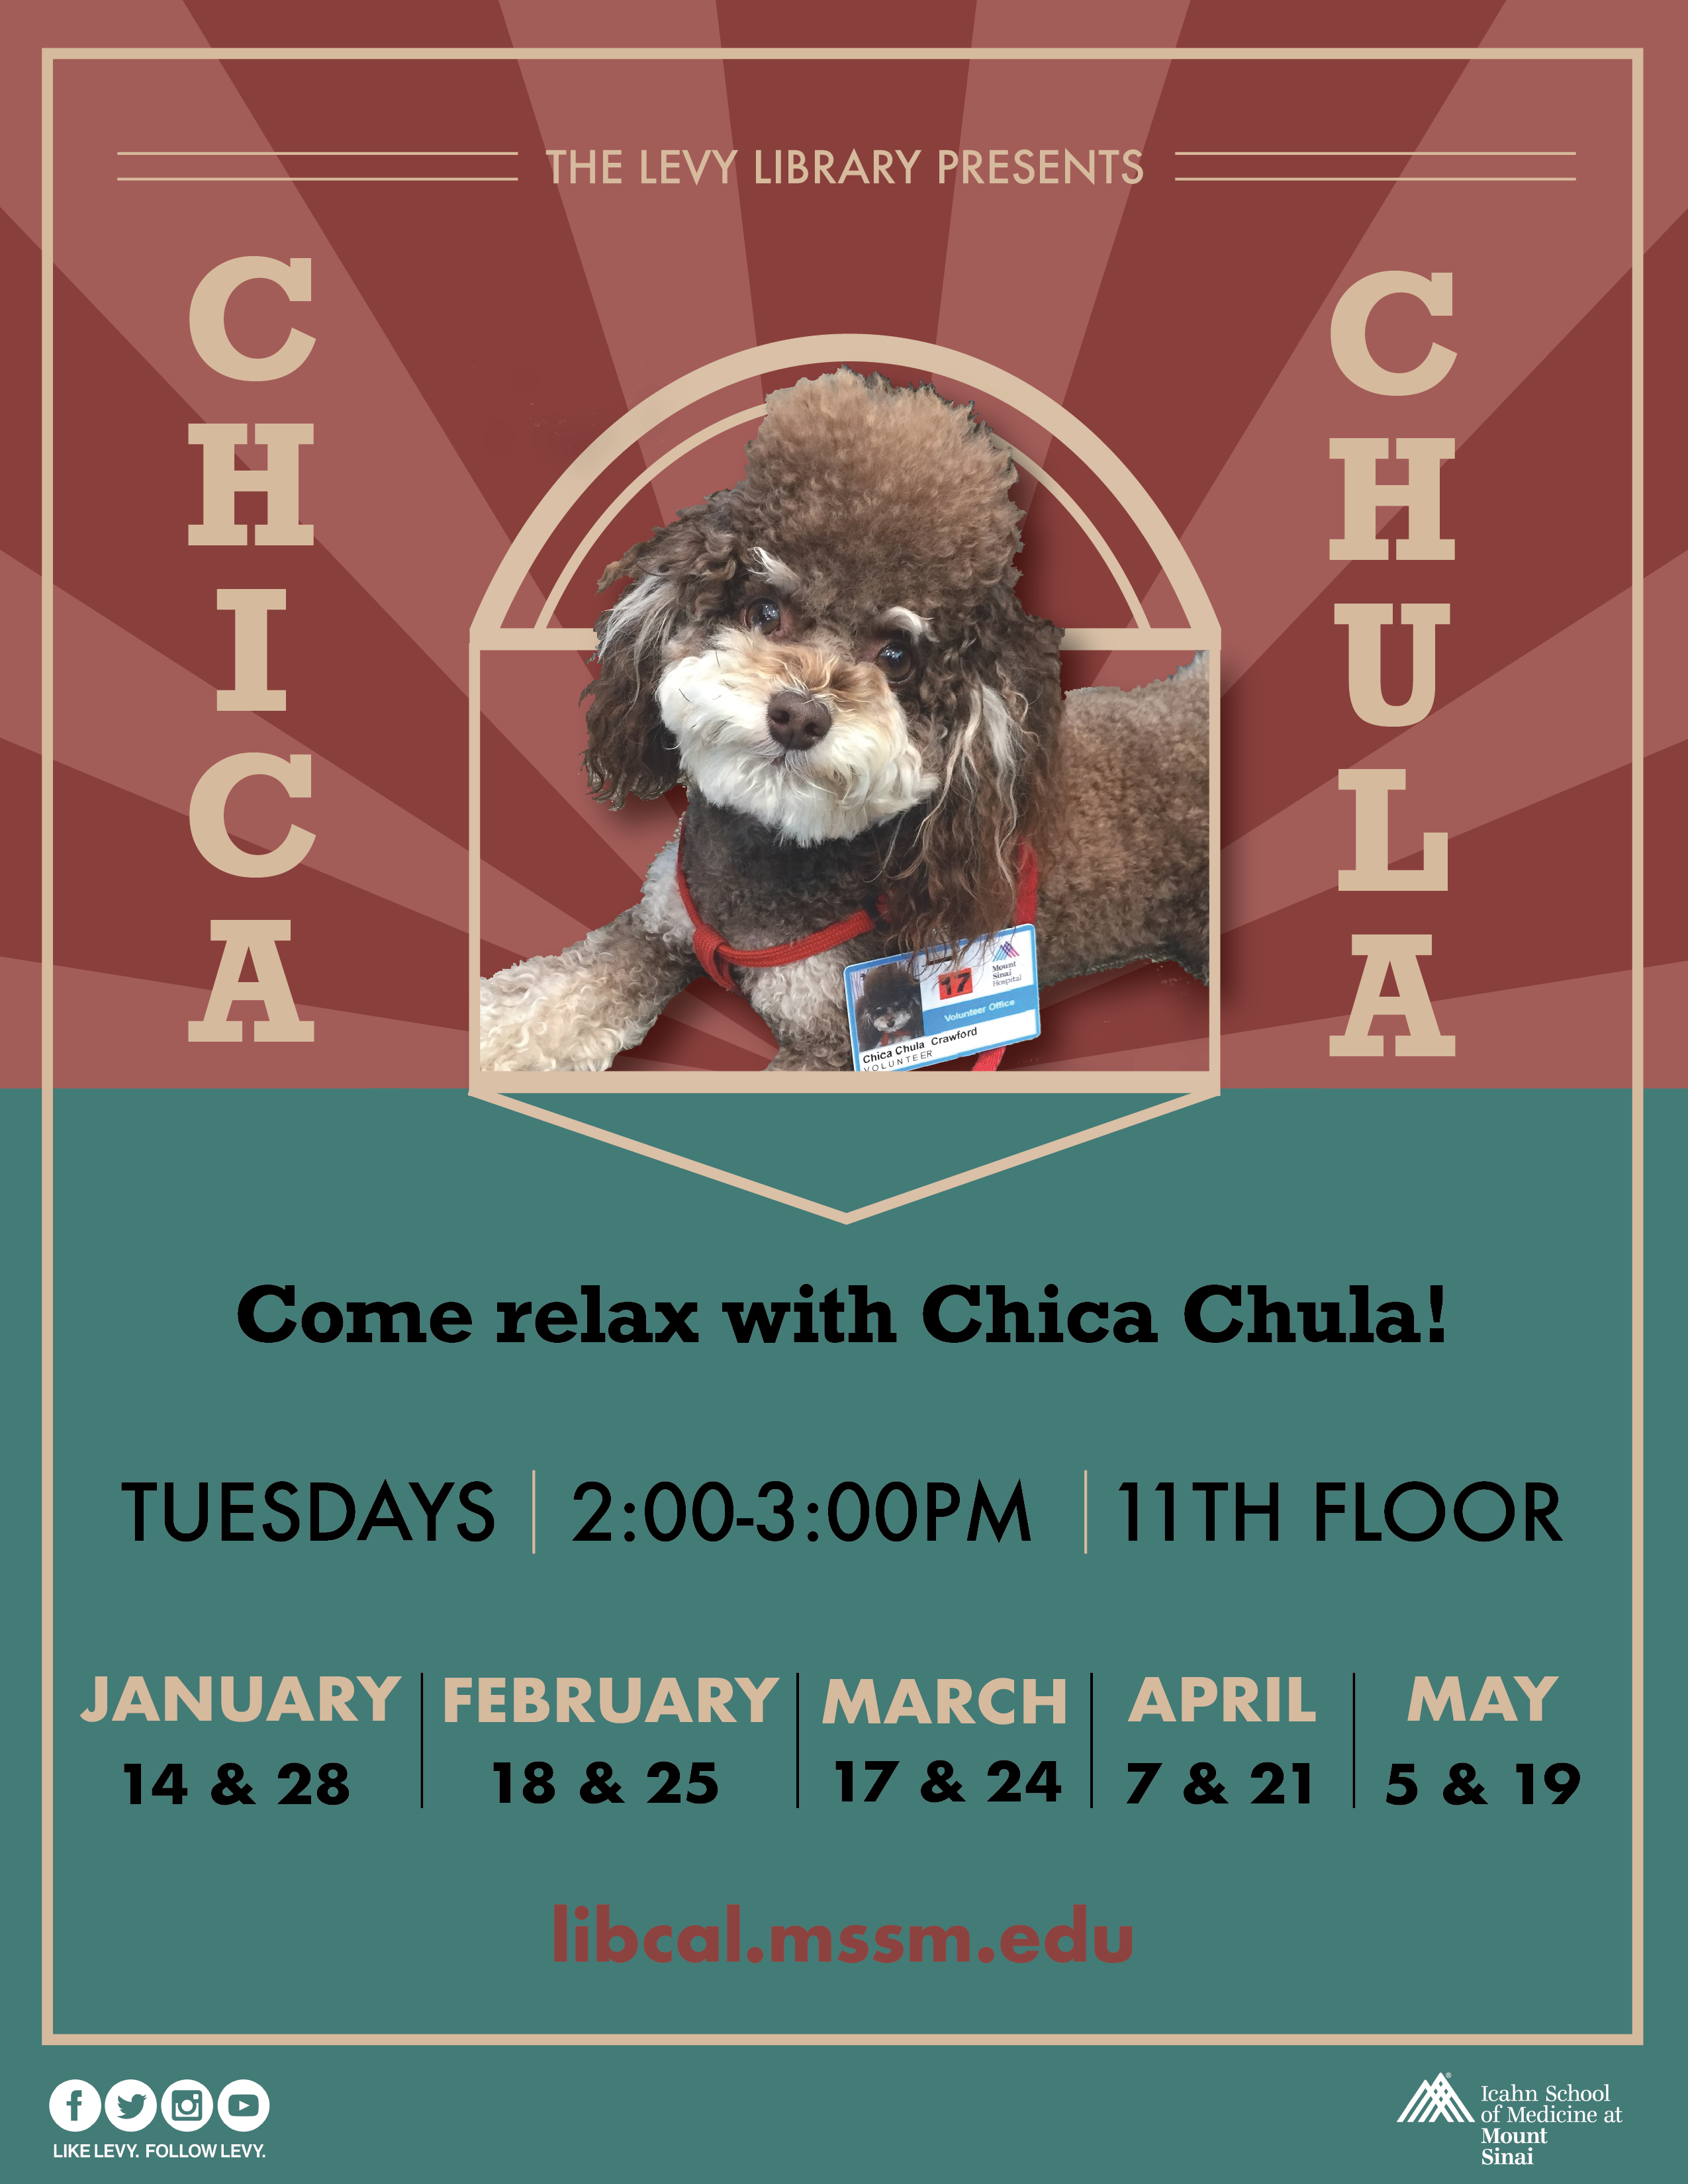 Chica Chula Therapy Dog